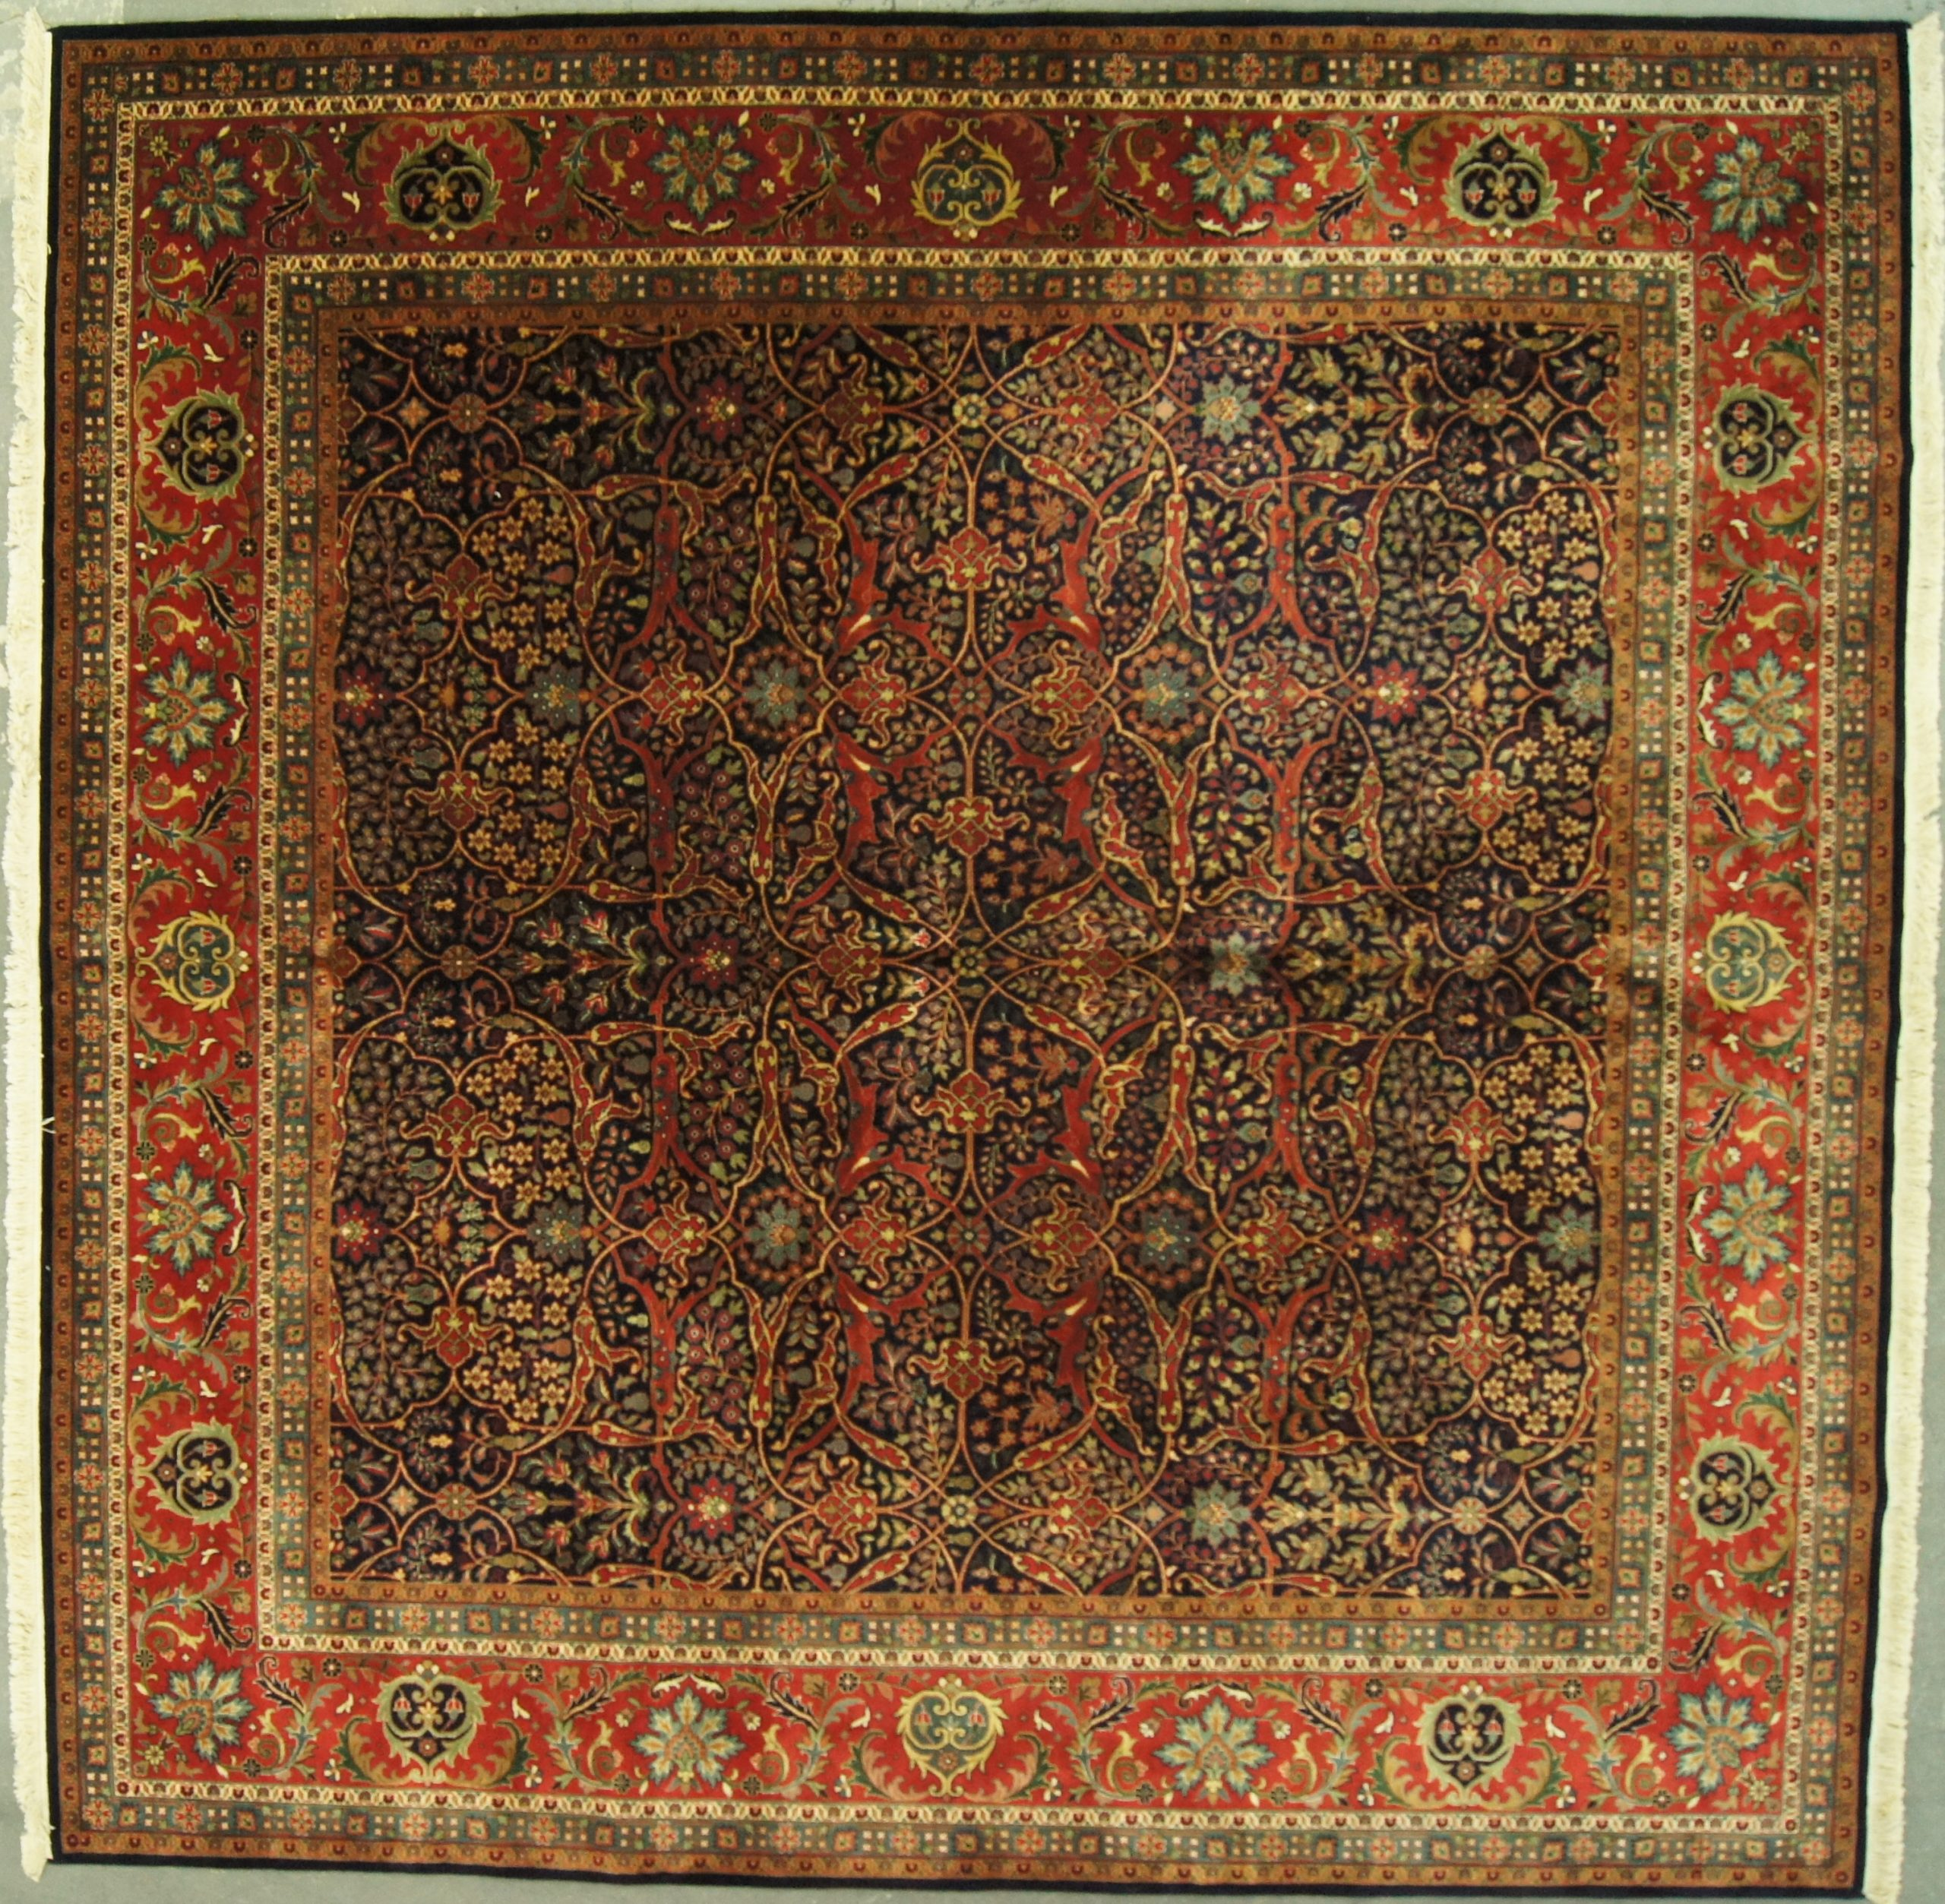 10x10 Indian Persian Design Superfine - Rug